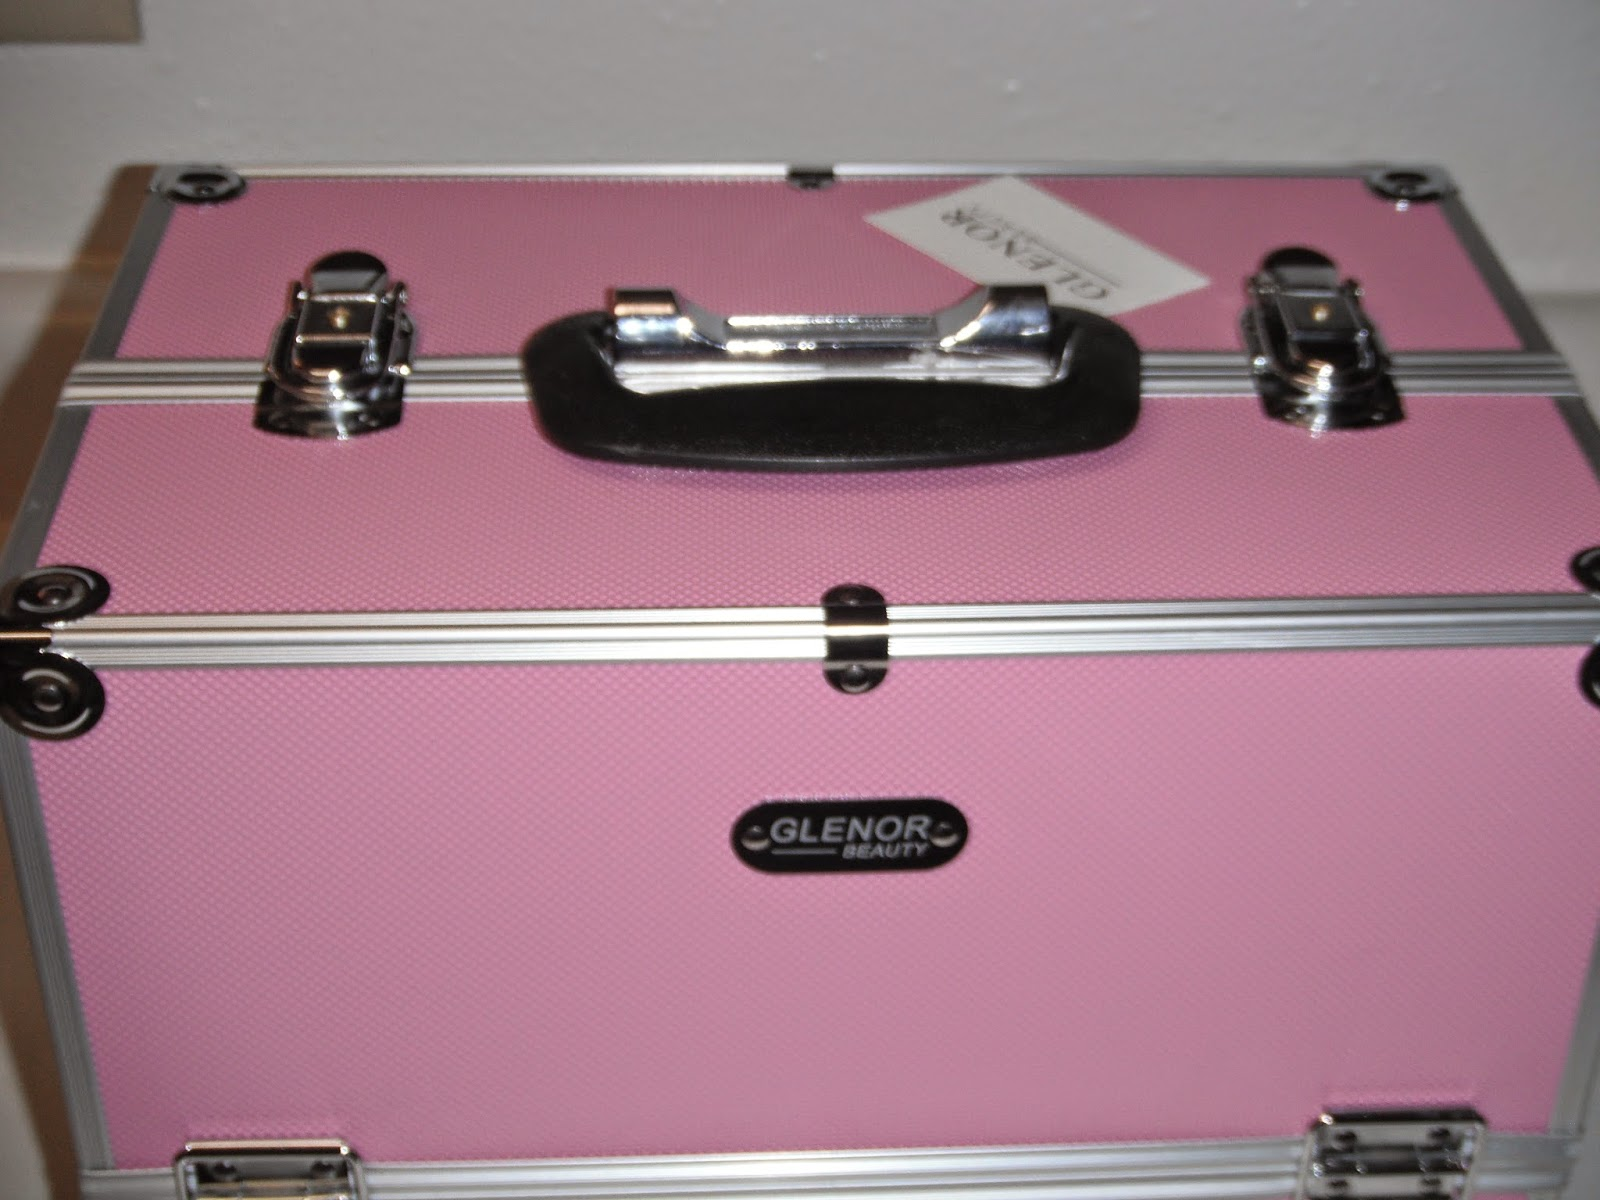 Britsy\'s Reviews: Review: Makeup Train Case